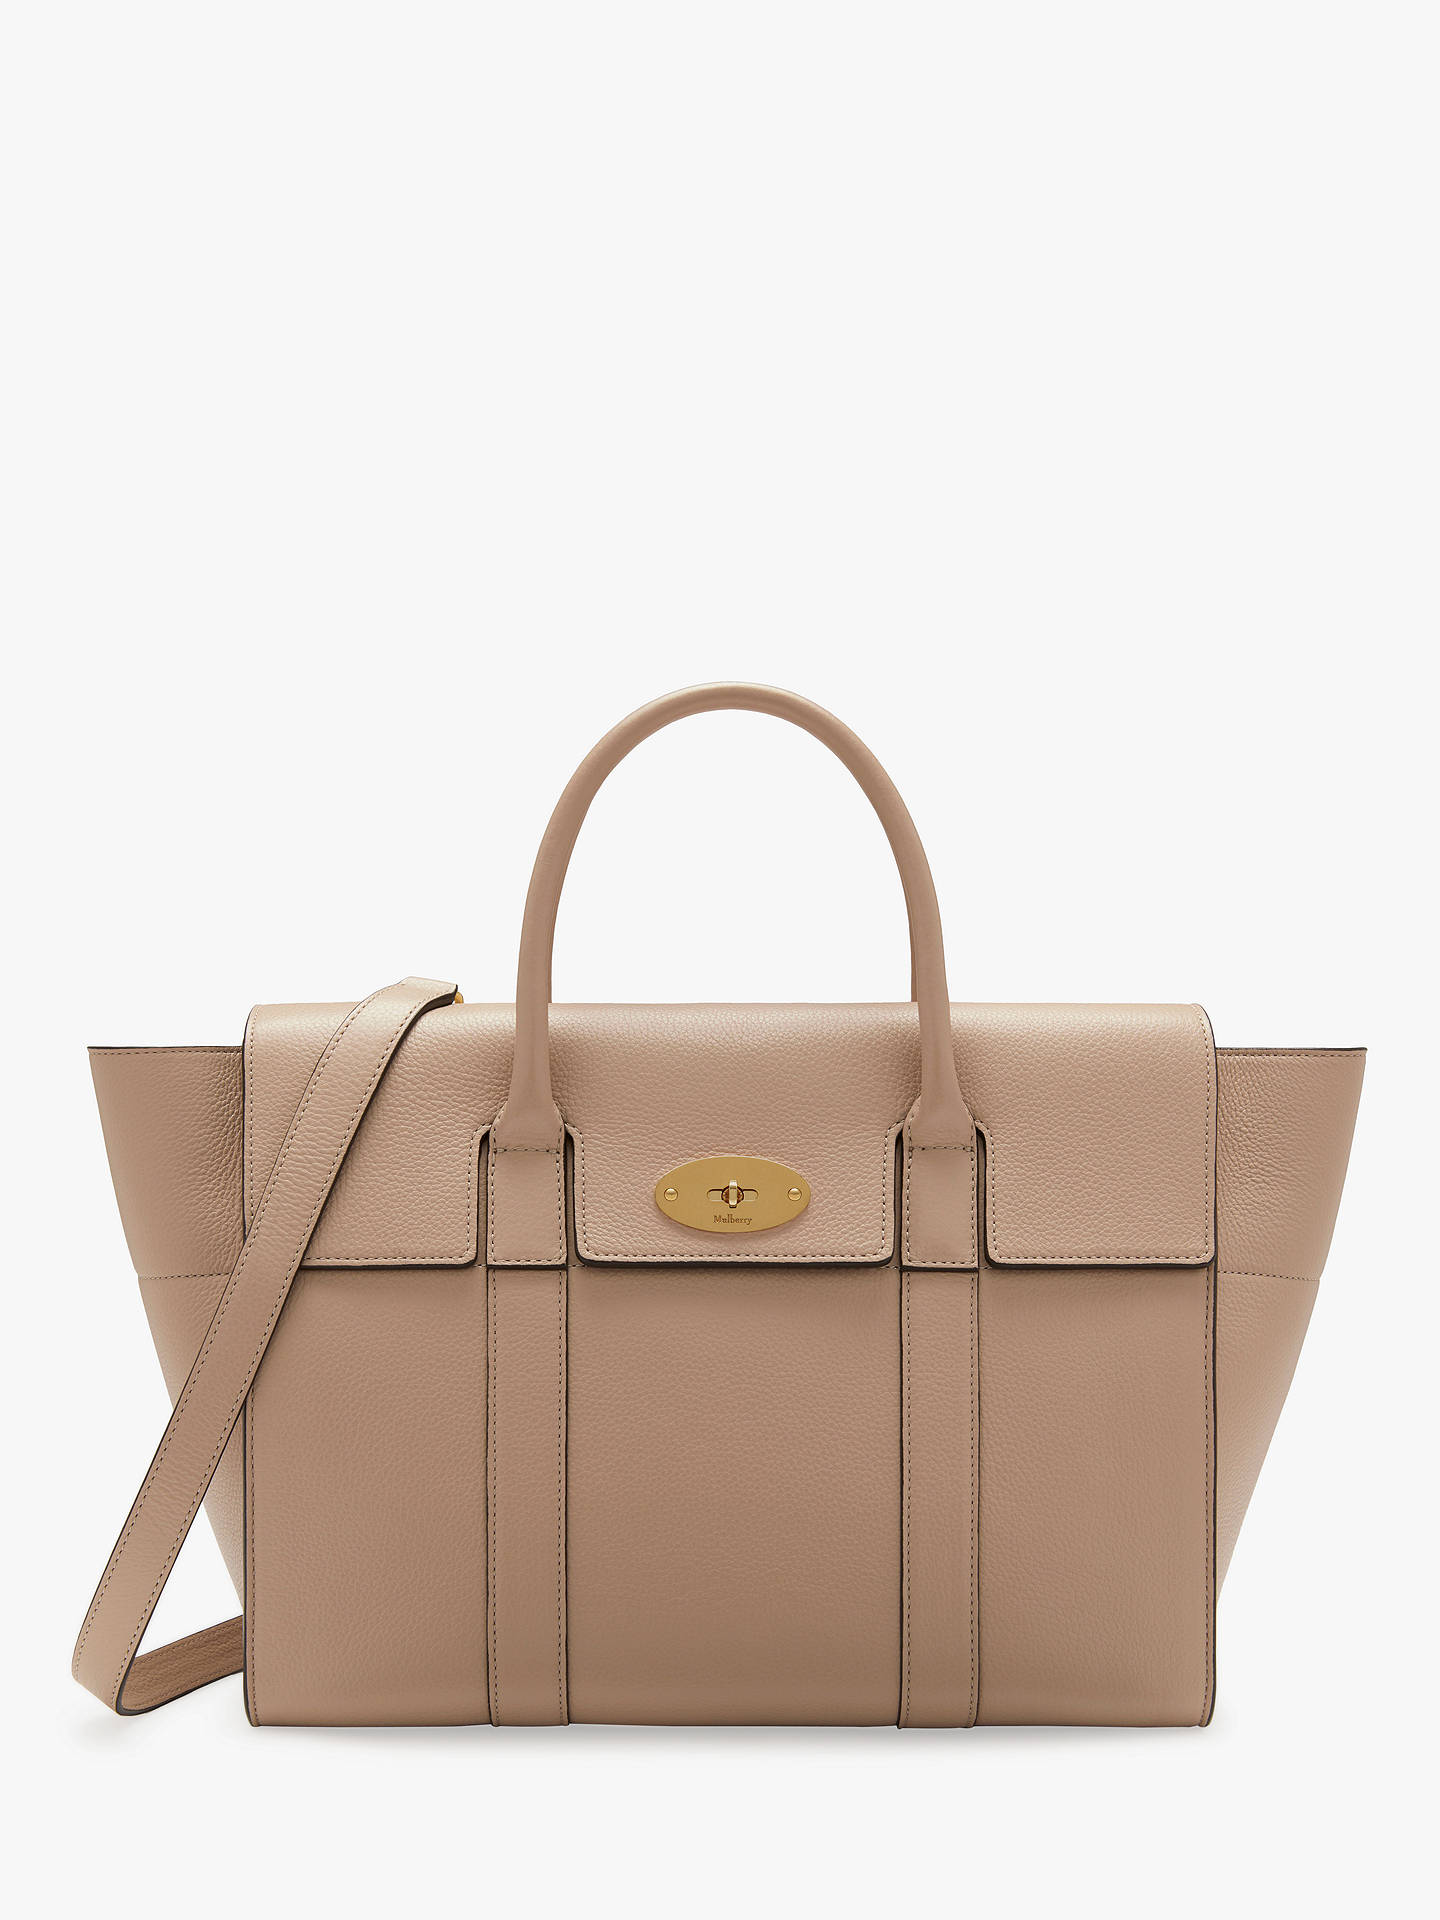 9d3267596e5 Buy Mulberry Bayswater with Strap Small Classic Grain Leather Bag,  Rosewater Online at johnlewis.